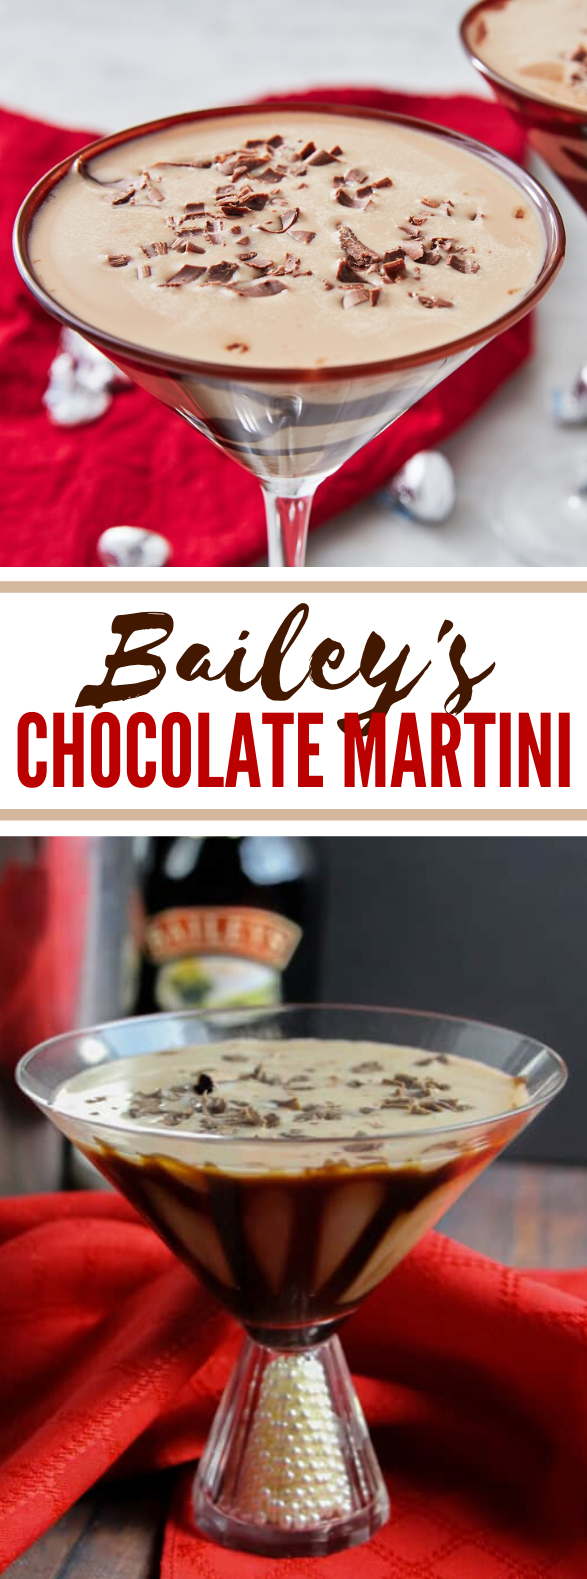 BAILEY'S CHOCOLATE MARTINI #drinks #cocktails